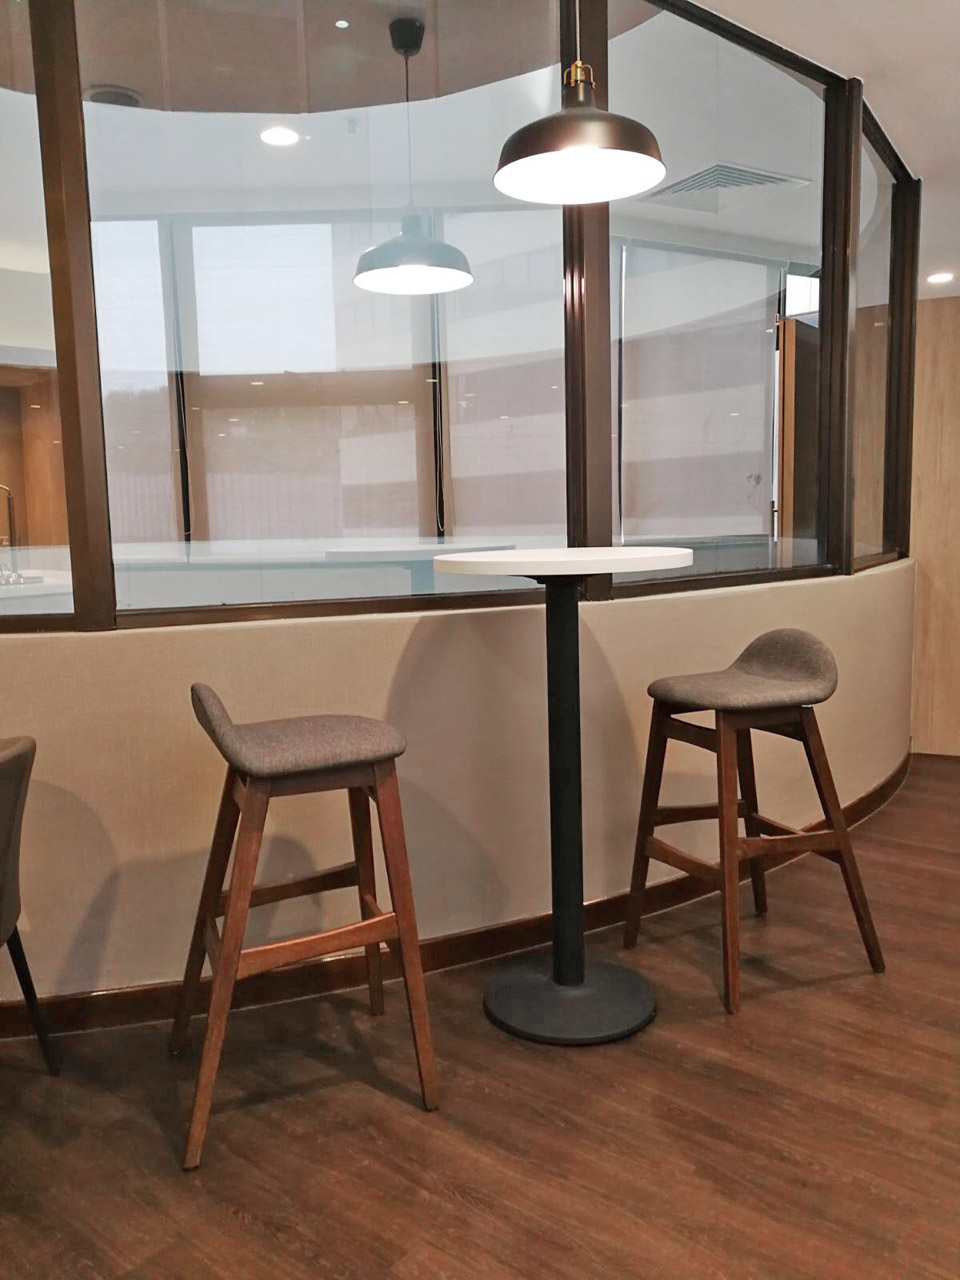 Gleneagles Hospital Staff Lounge - Napier Road | Product Seen: [Customised Laminate Tabletop + Cosson Table base & Jazz Barstool – SH750]